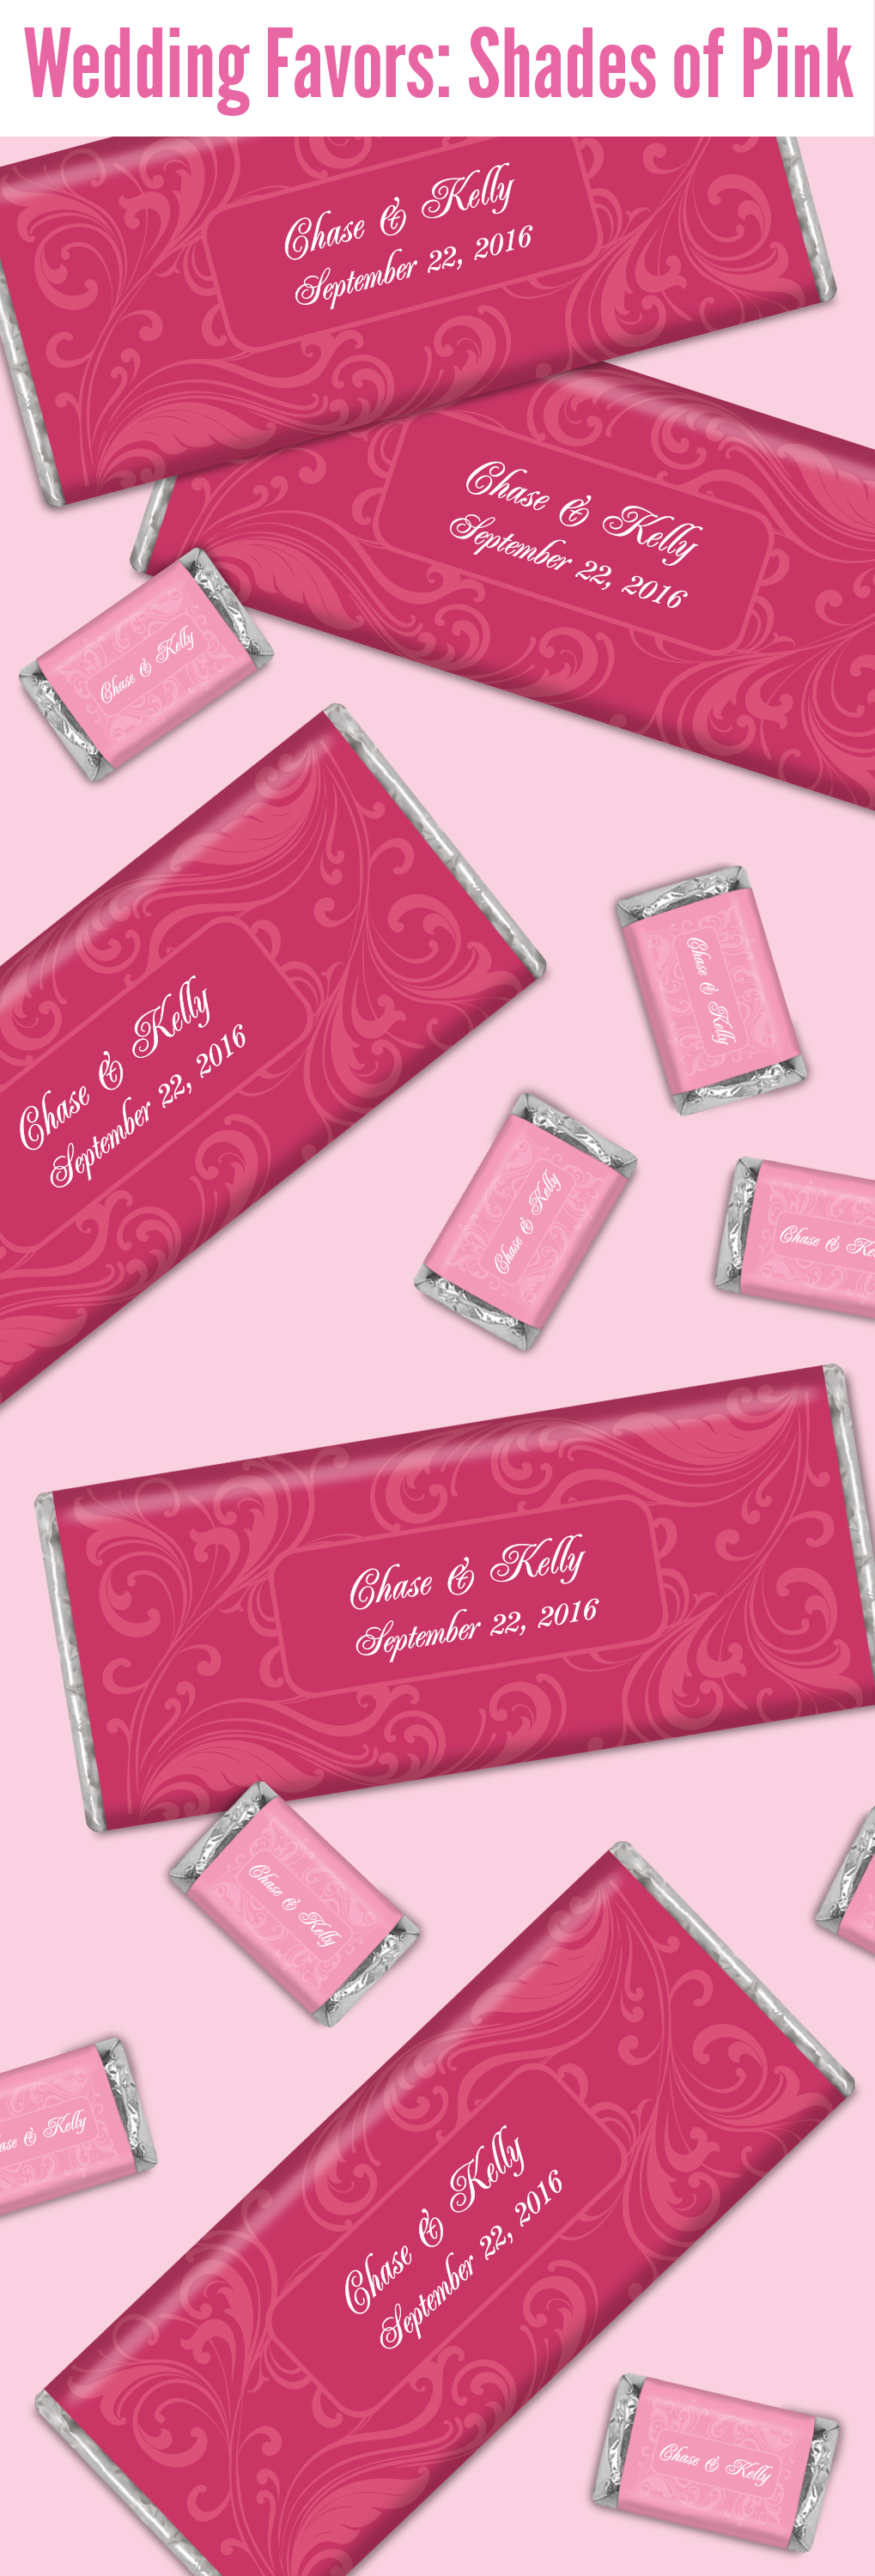 HERSHEY\'S chocolate wedding favors in various shades of pink will be ...